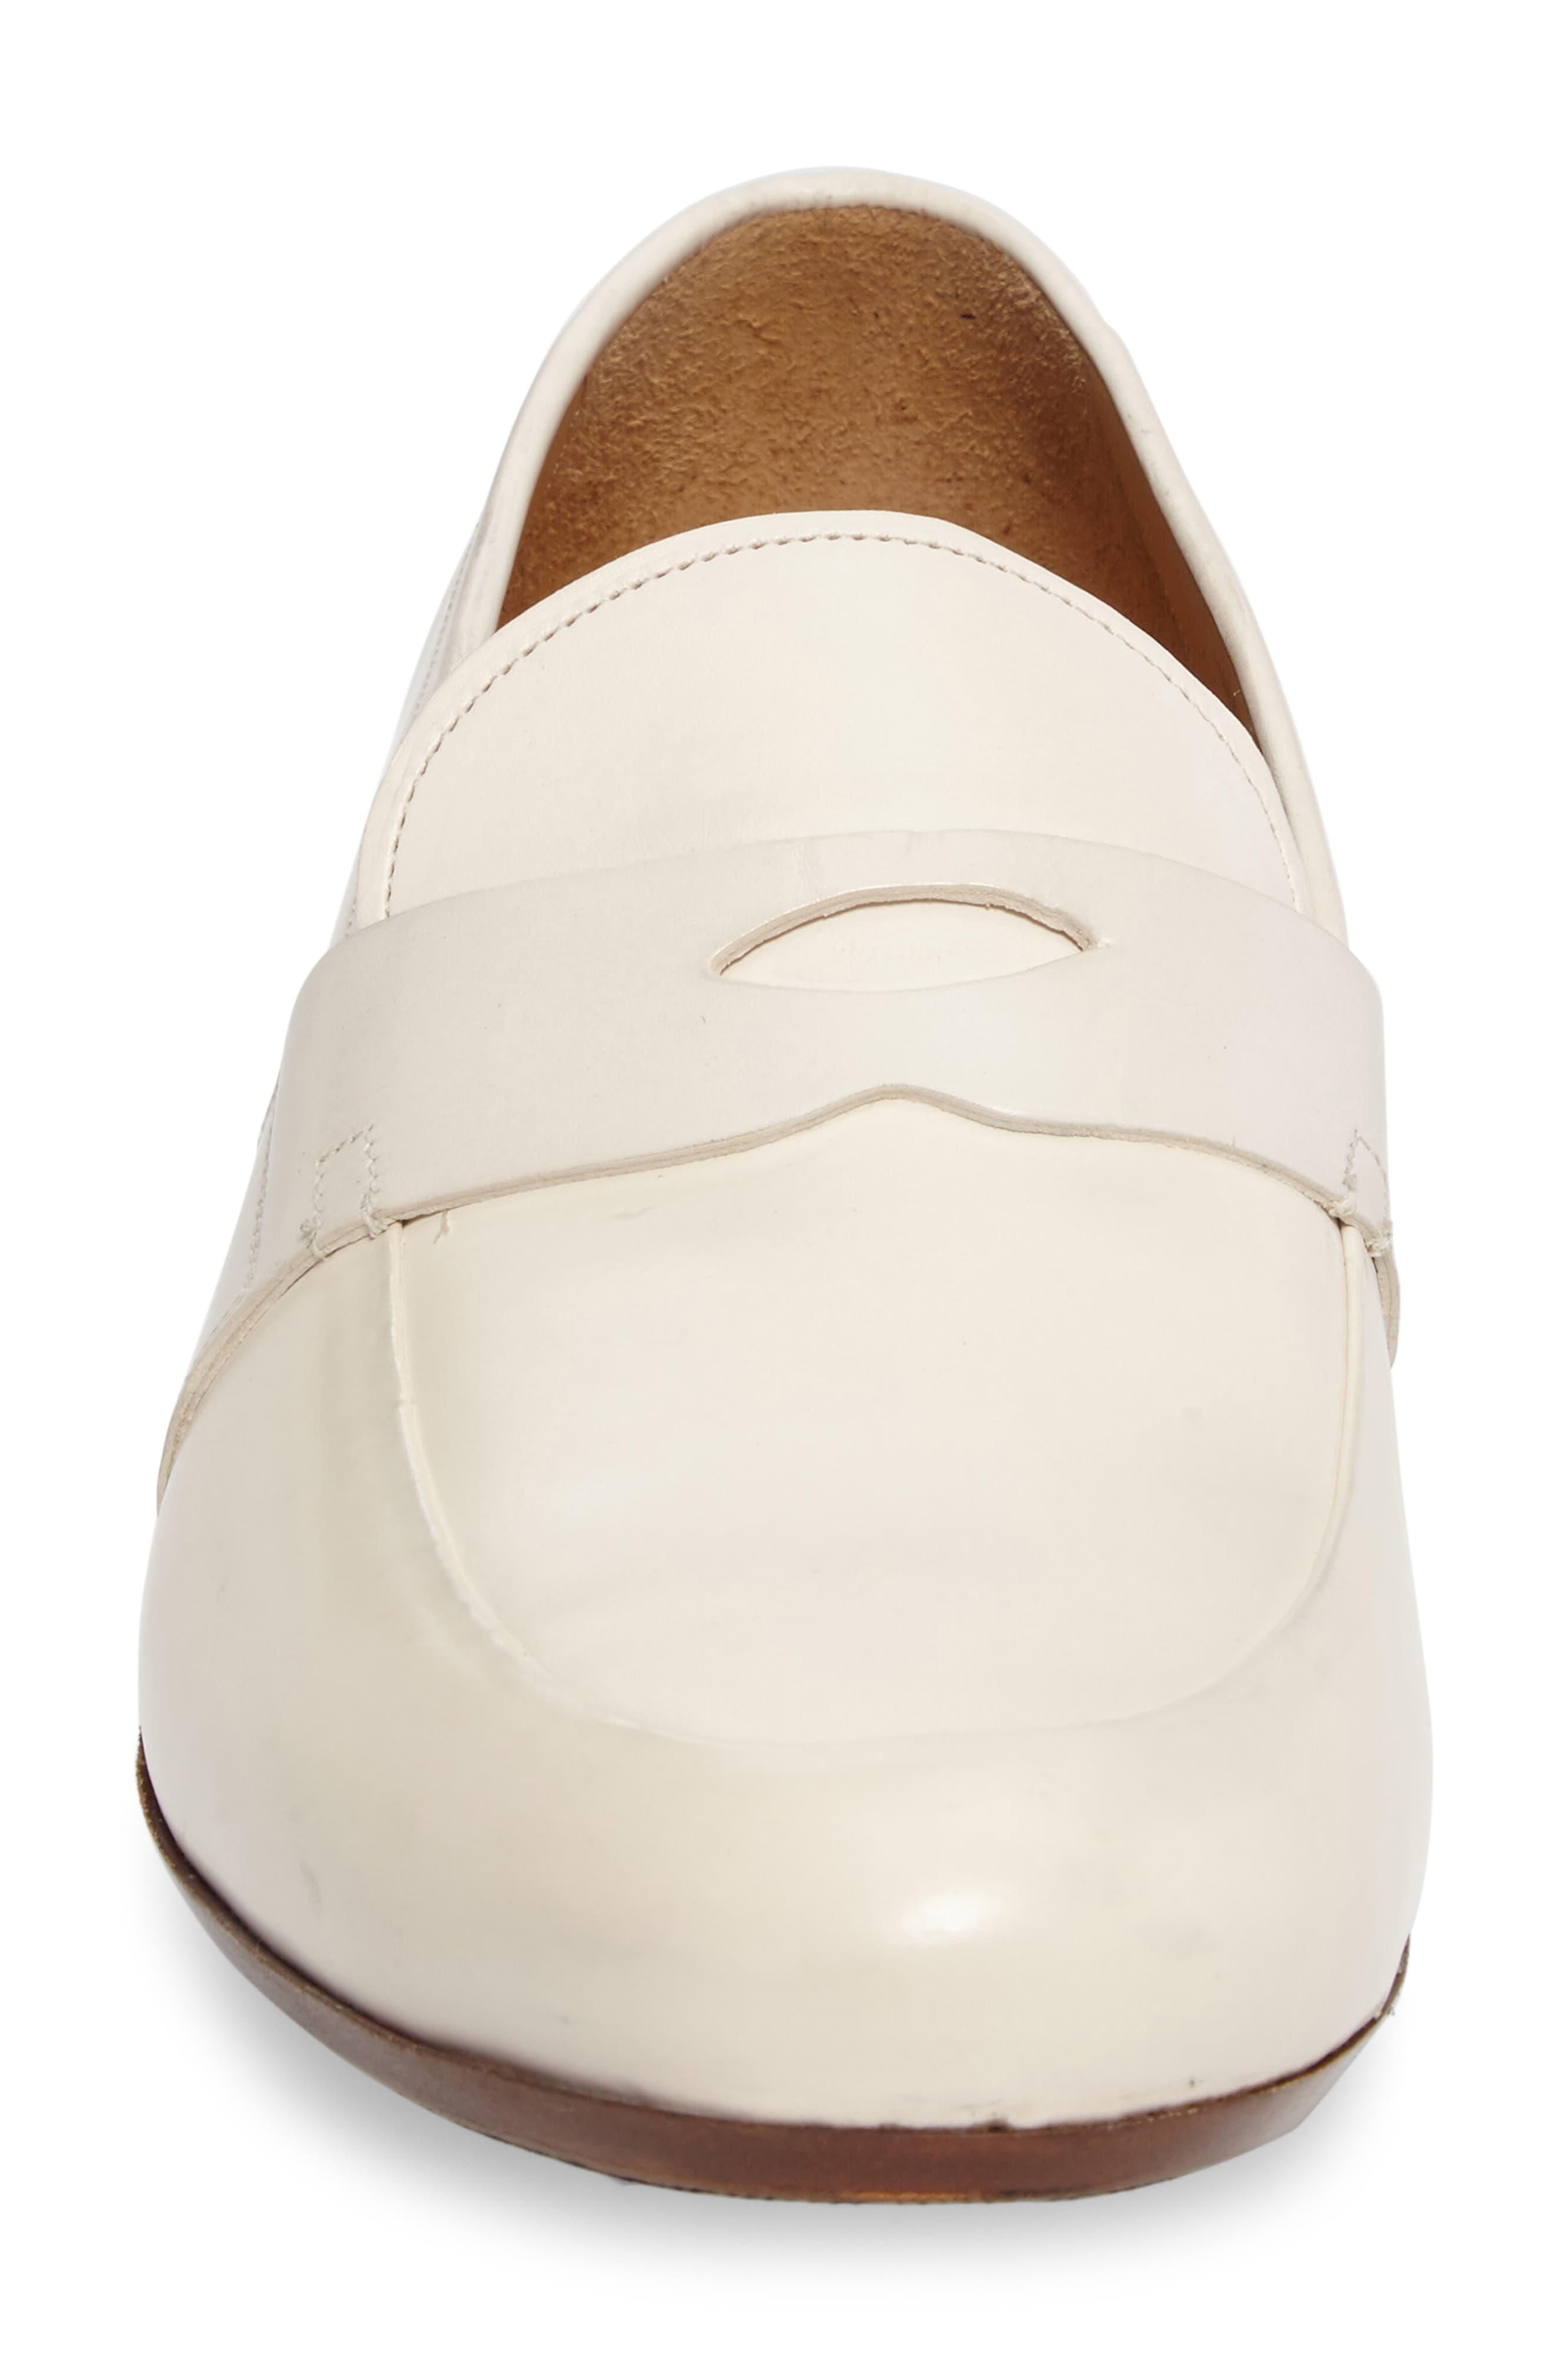 Leopold Penny Loafer,                             Alternate thumbnail 4, color,                             Bone Leather